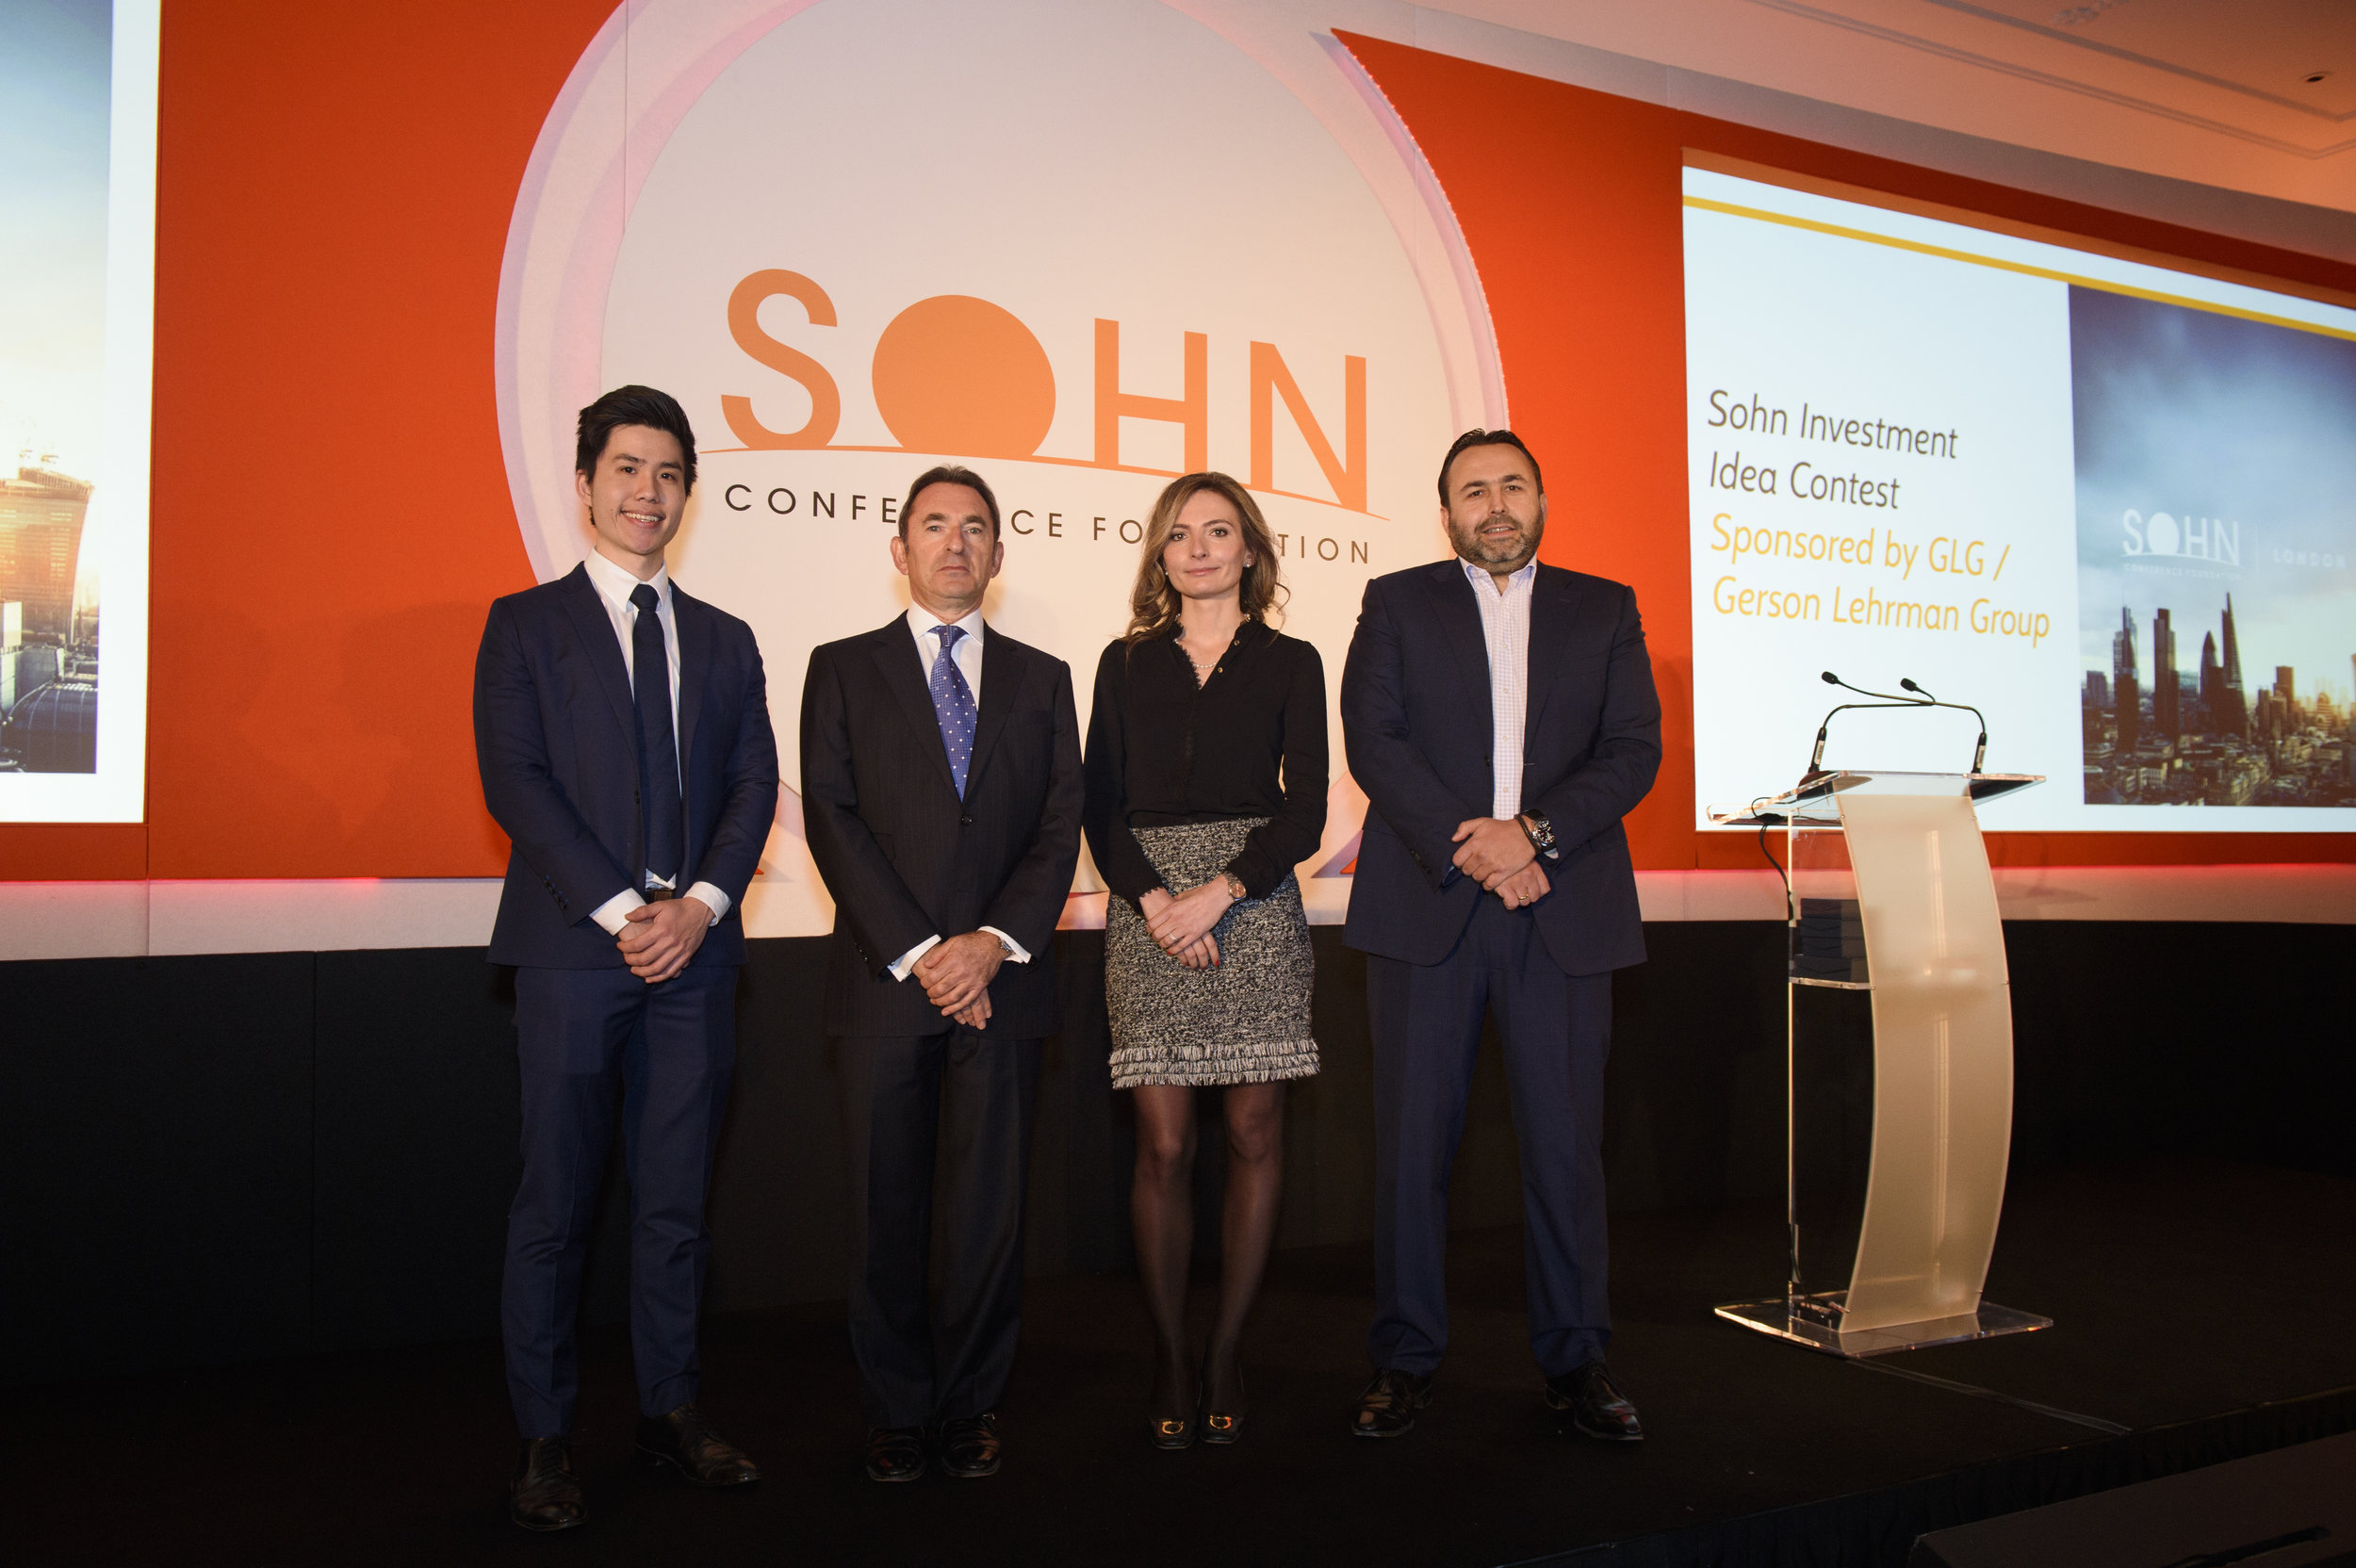 Sohn Top 4 Finalists photo 2.jpg